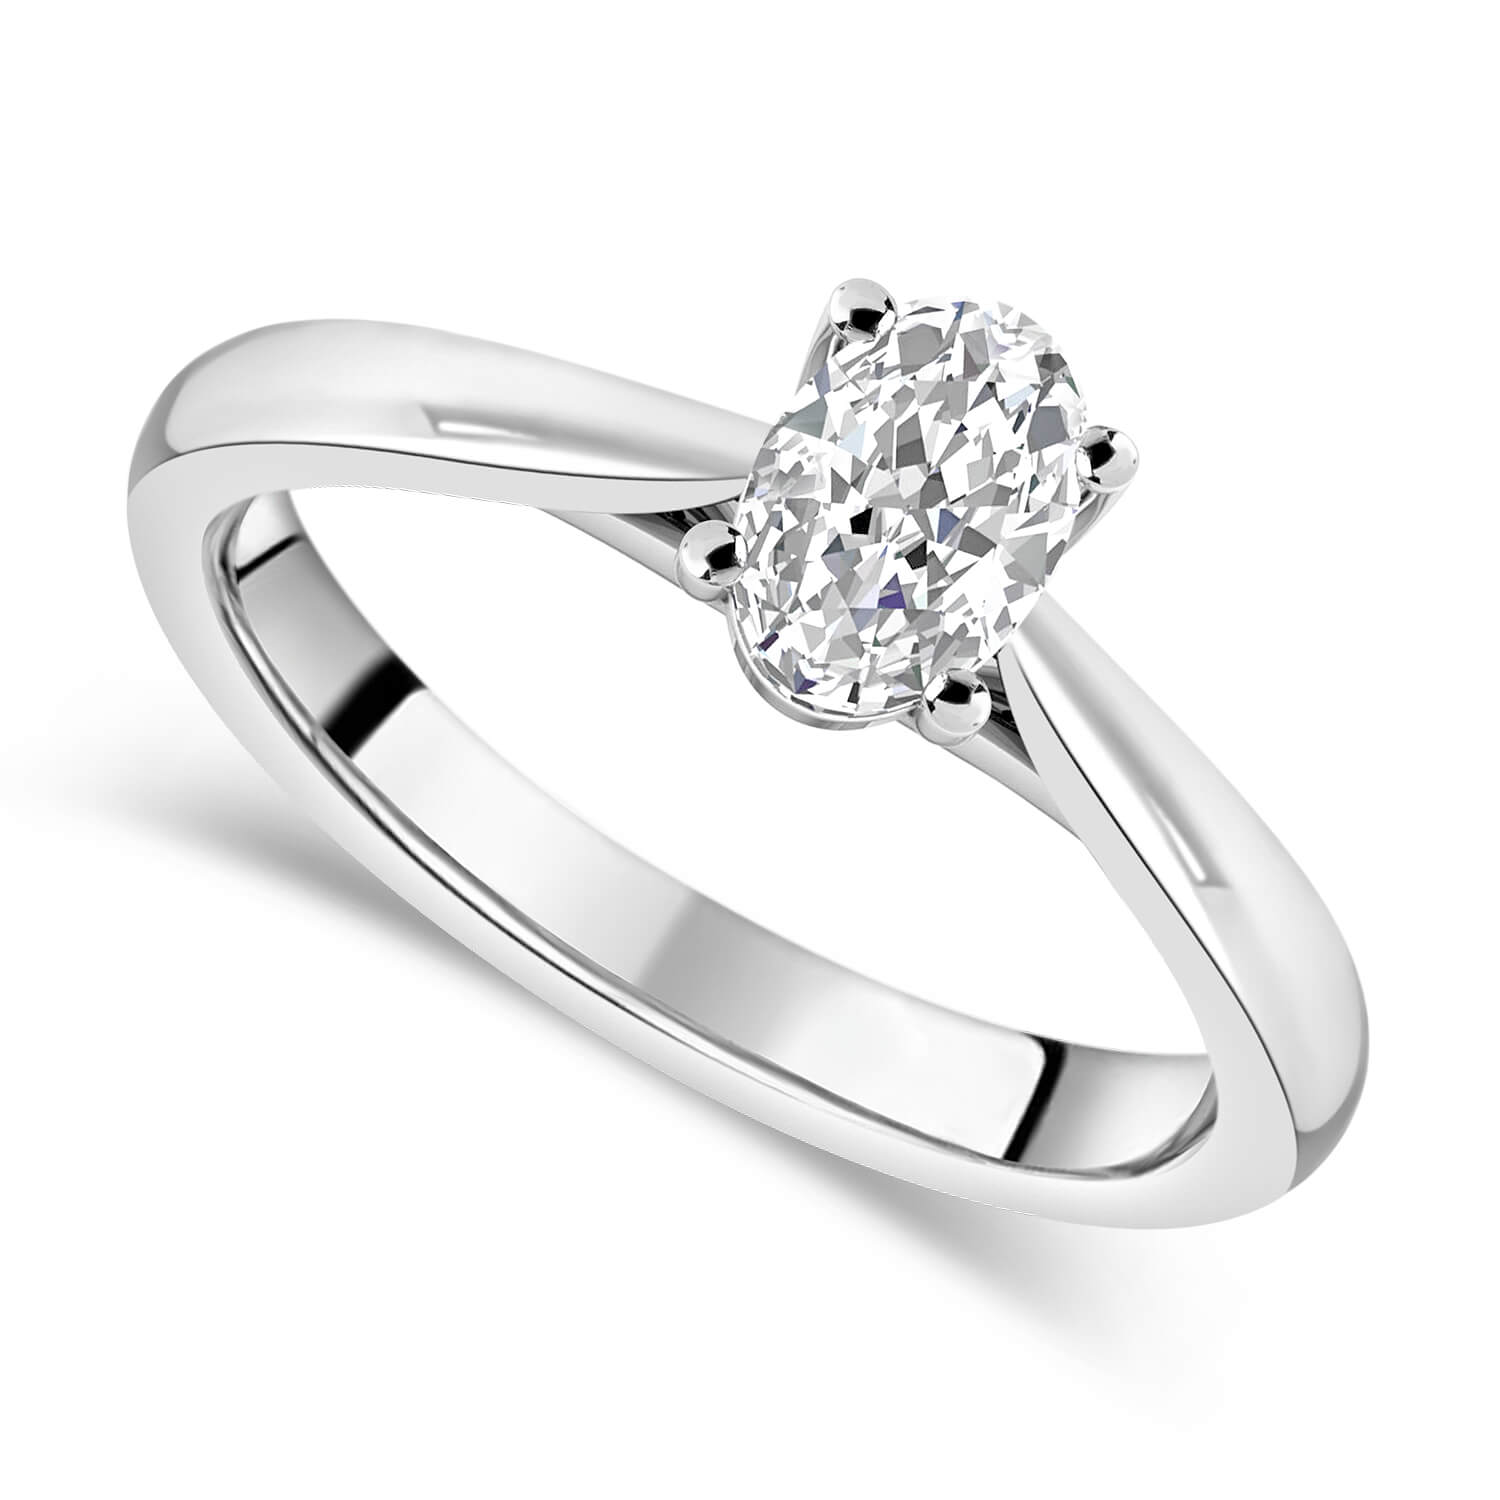 18ct White Gold 0.70ct Oval Diamond Fraser Hart Setting Ring